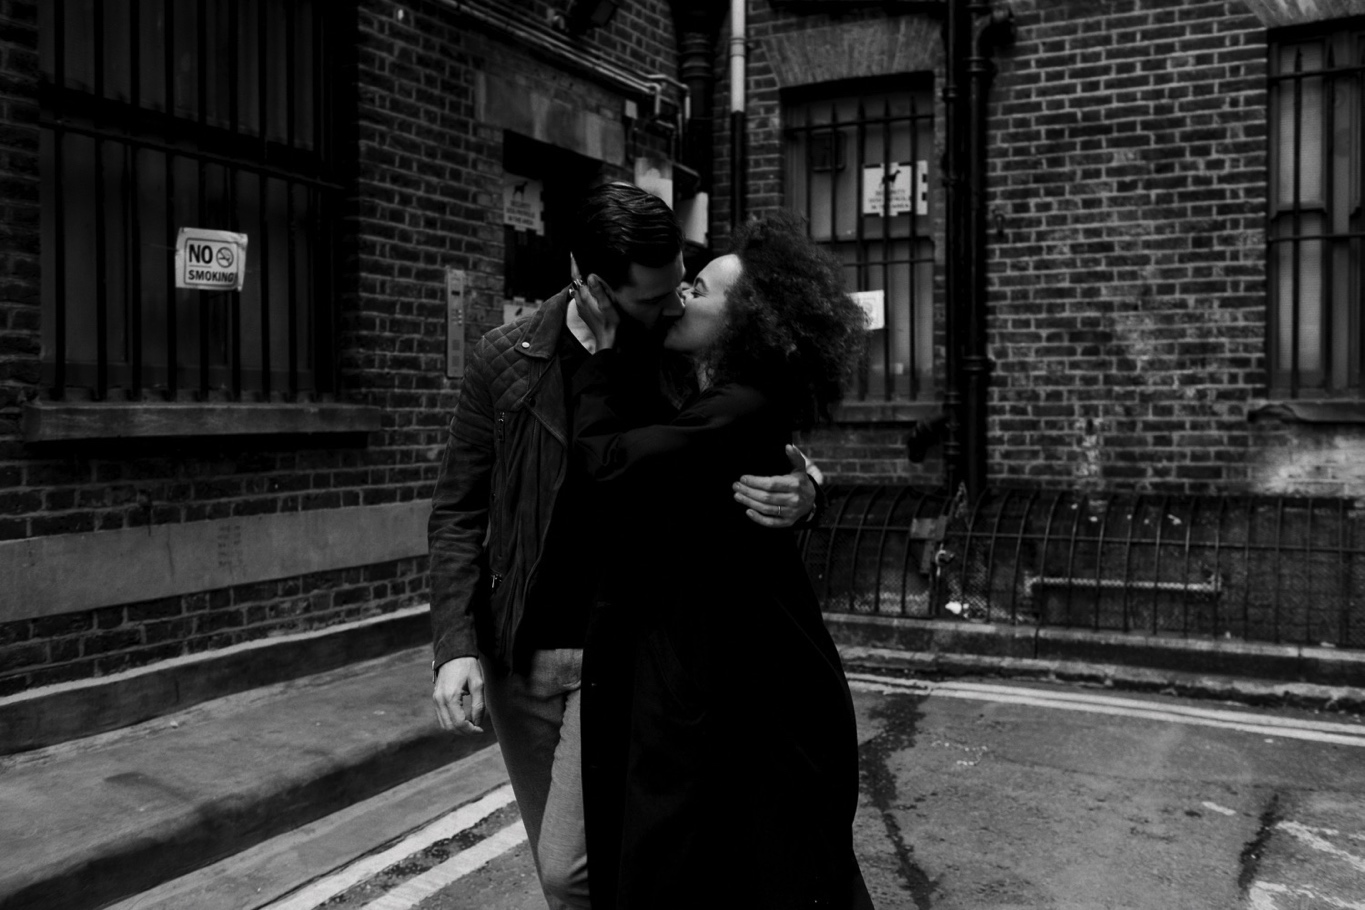 Lovers in London